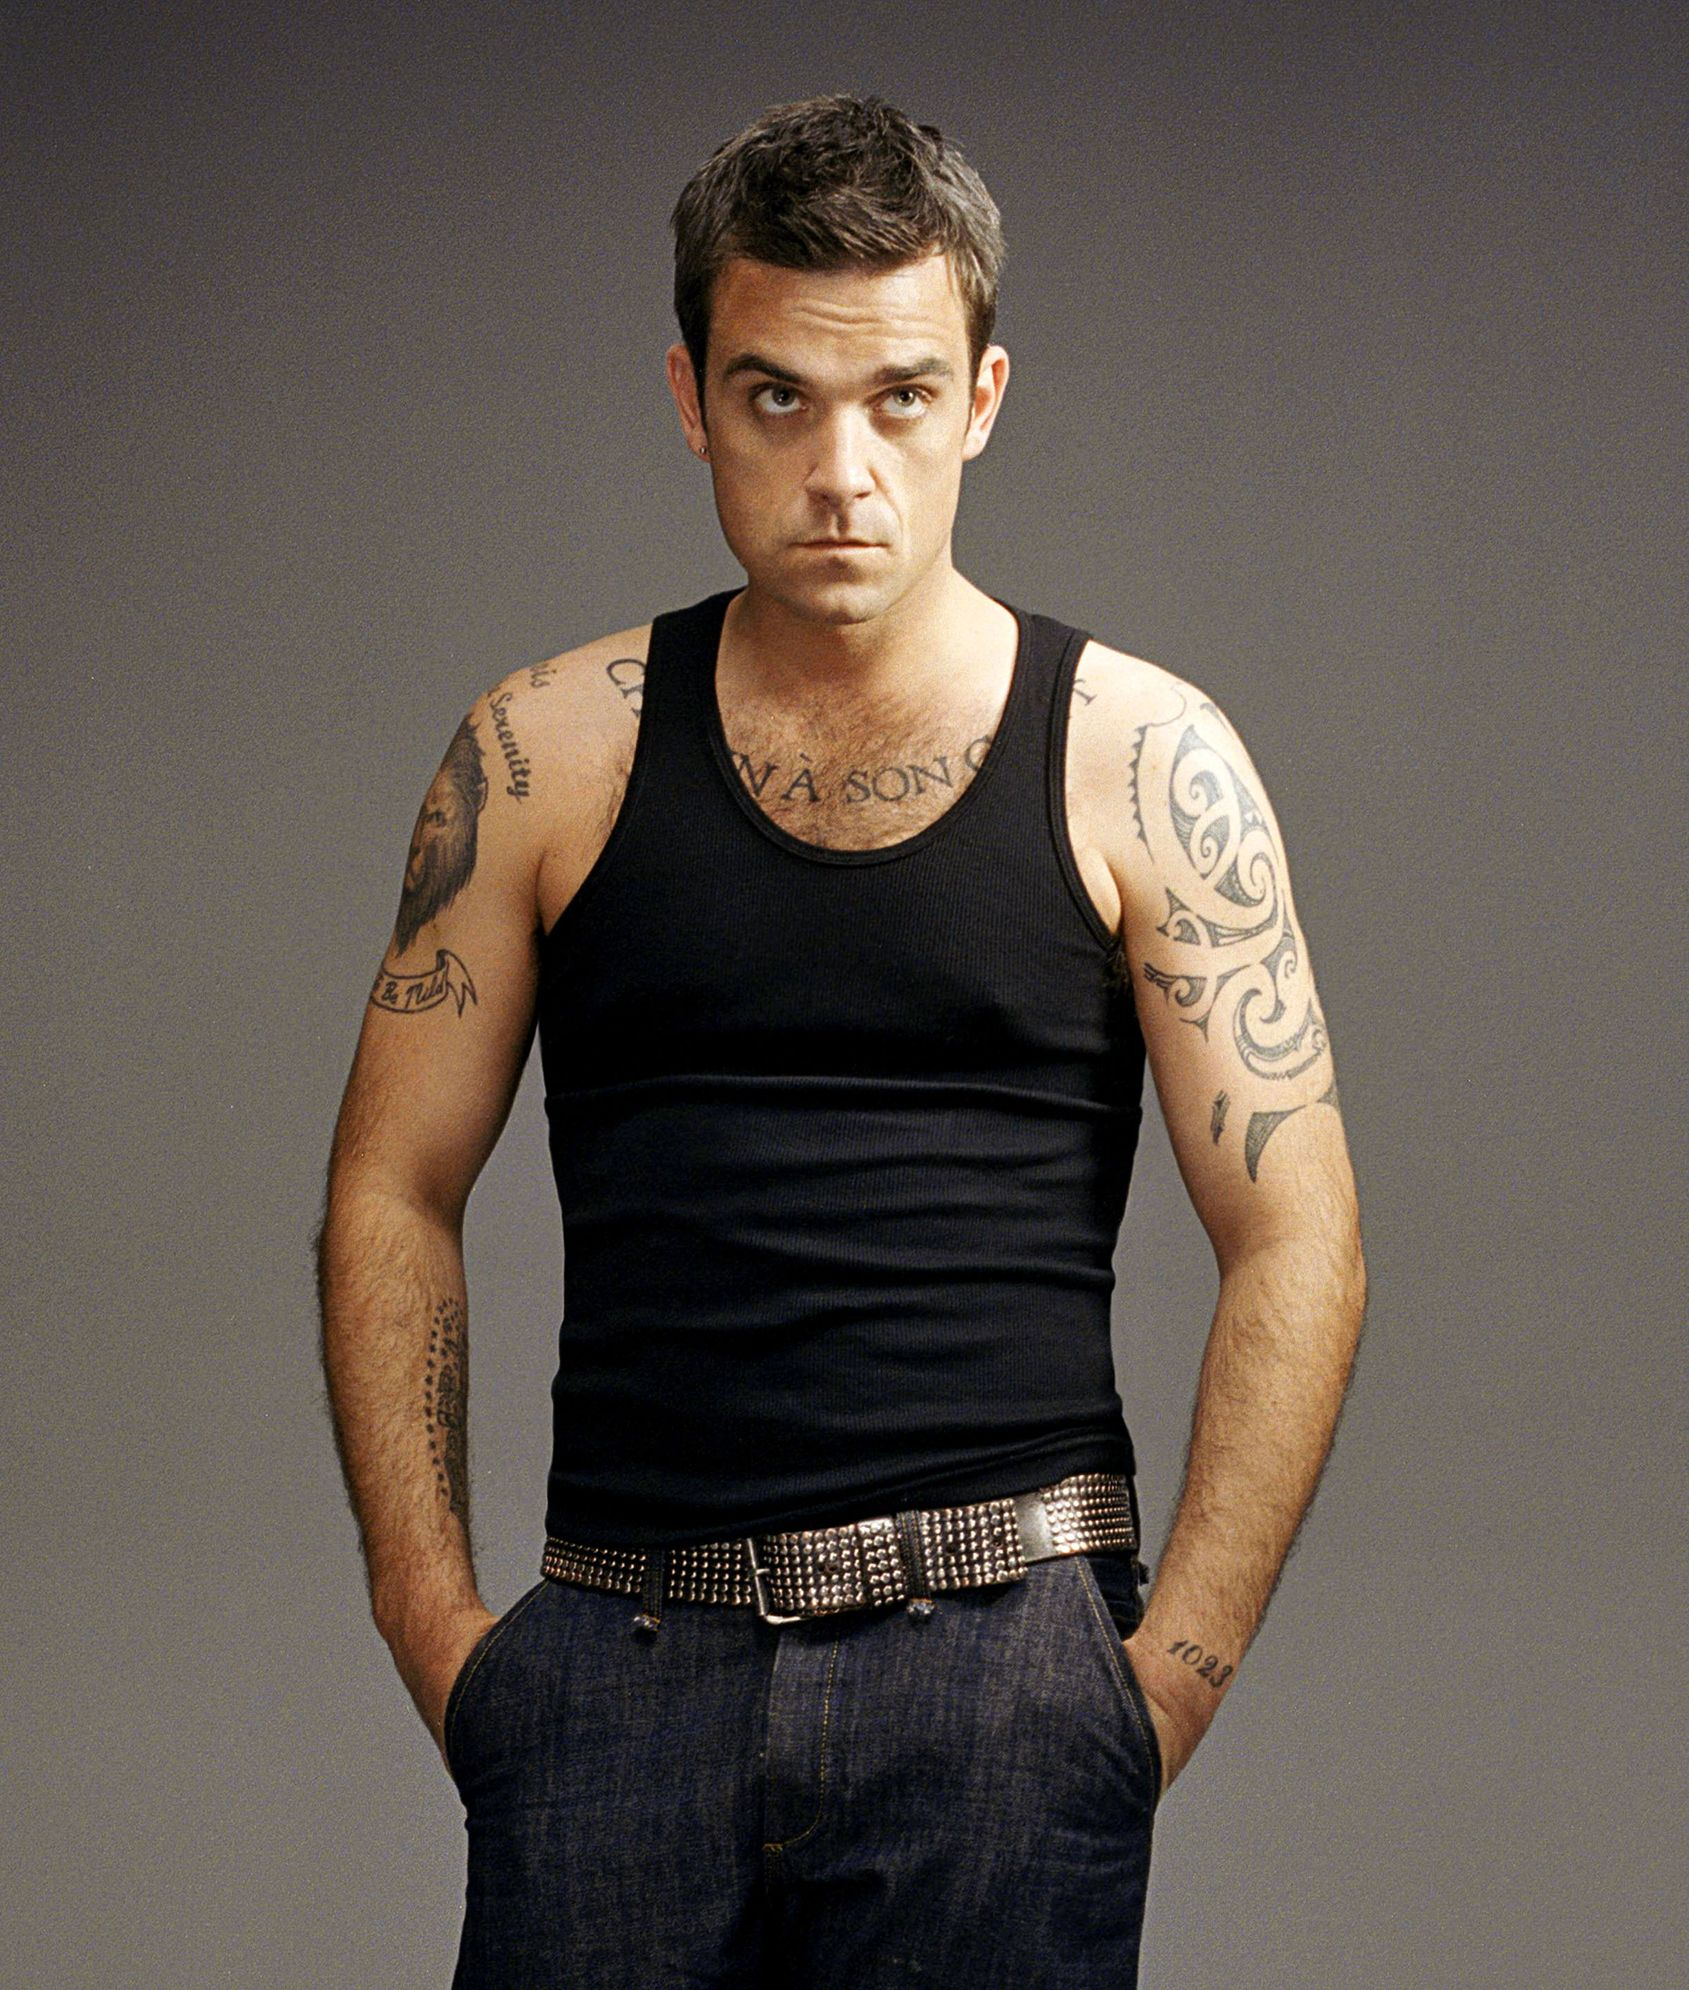 Robbie Williams  Robbie   Pinterest  Musik bilder